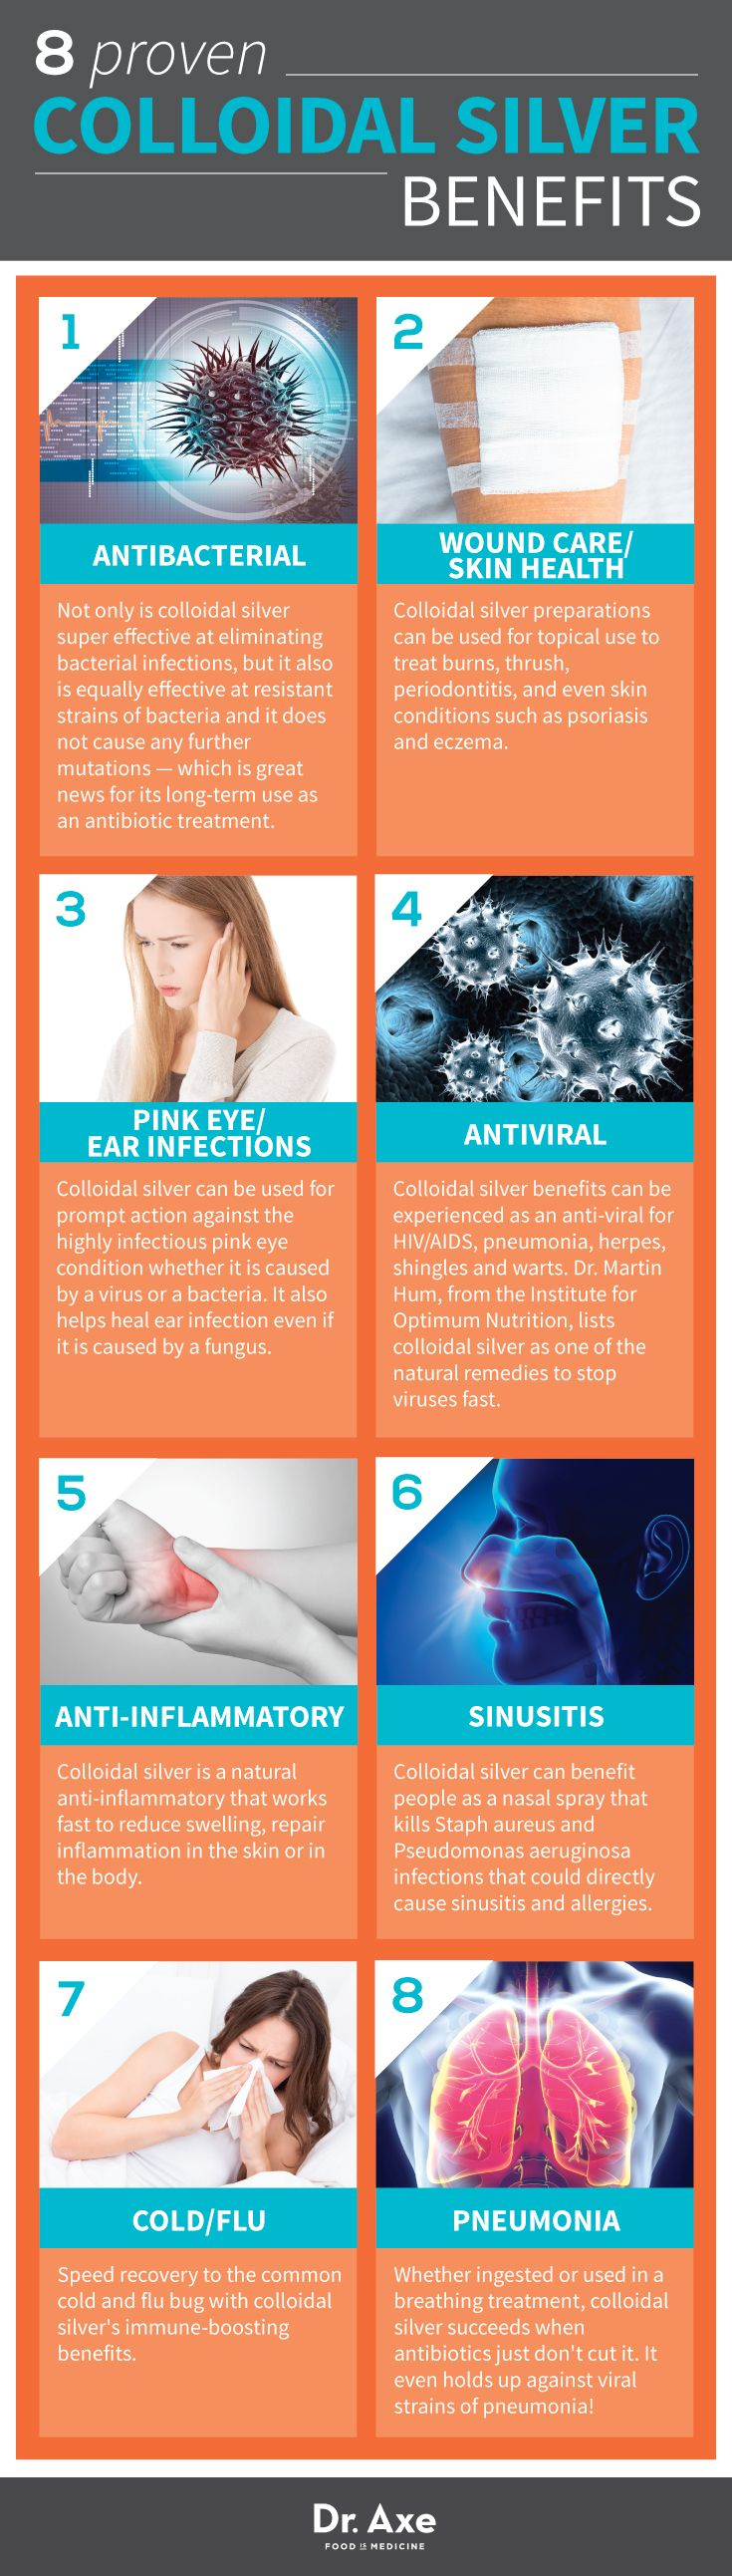 Proven Colloidal Silver Health Benefits Infographic chart http://www.draxe.com #health #holistic #natural